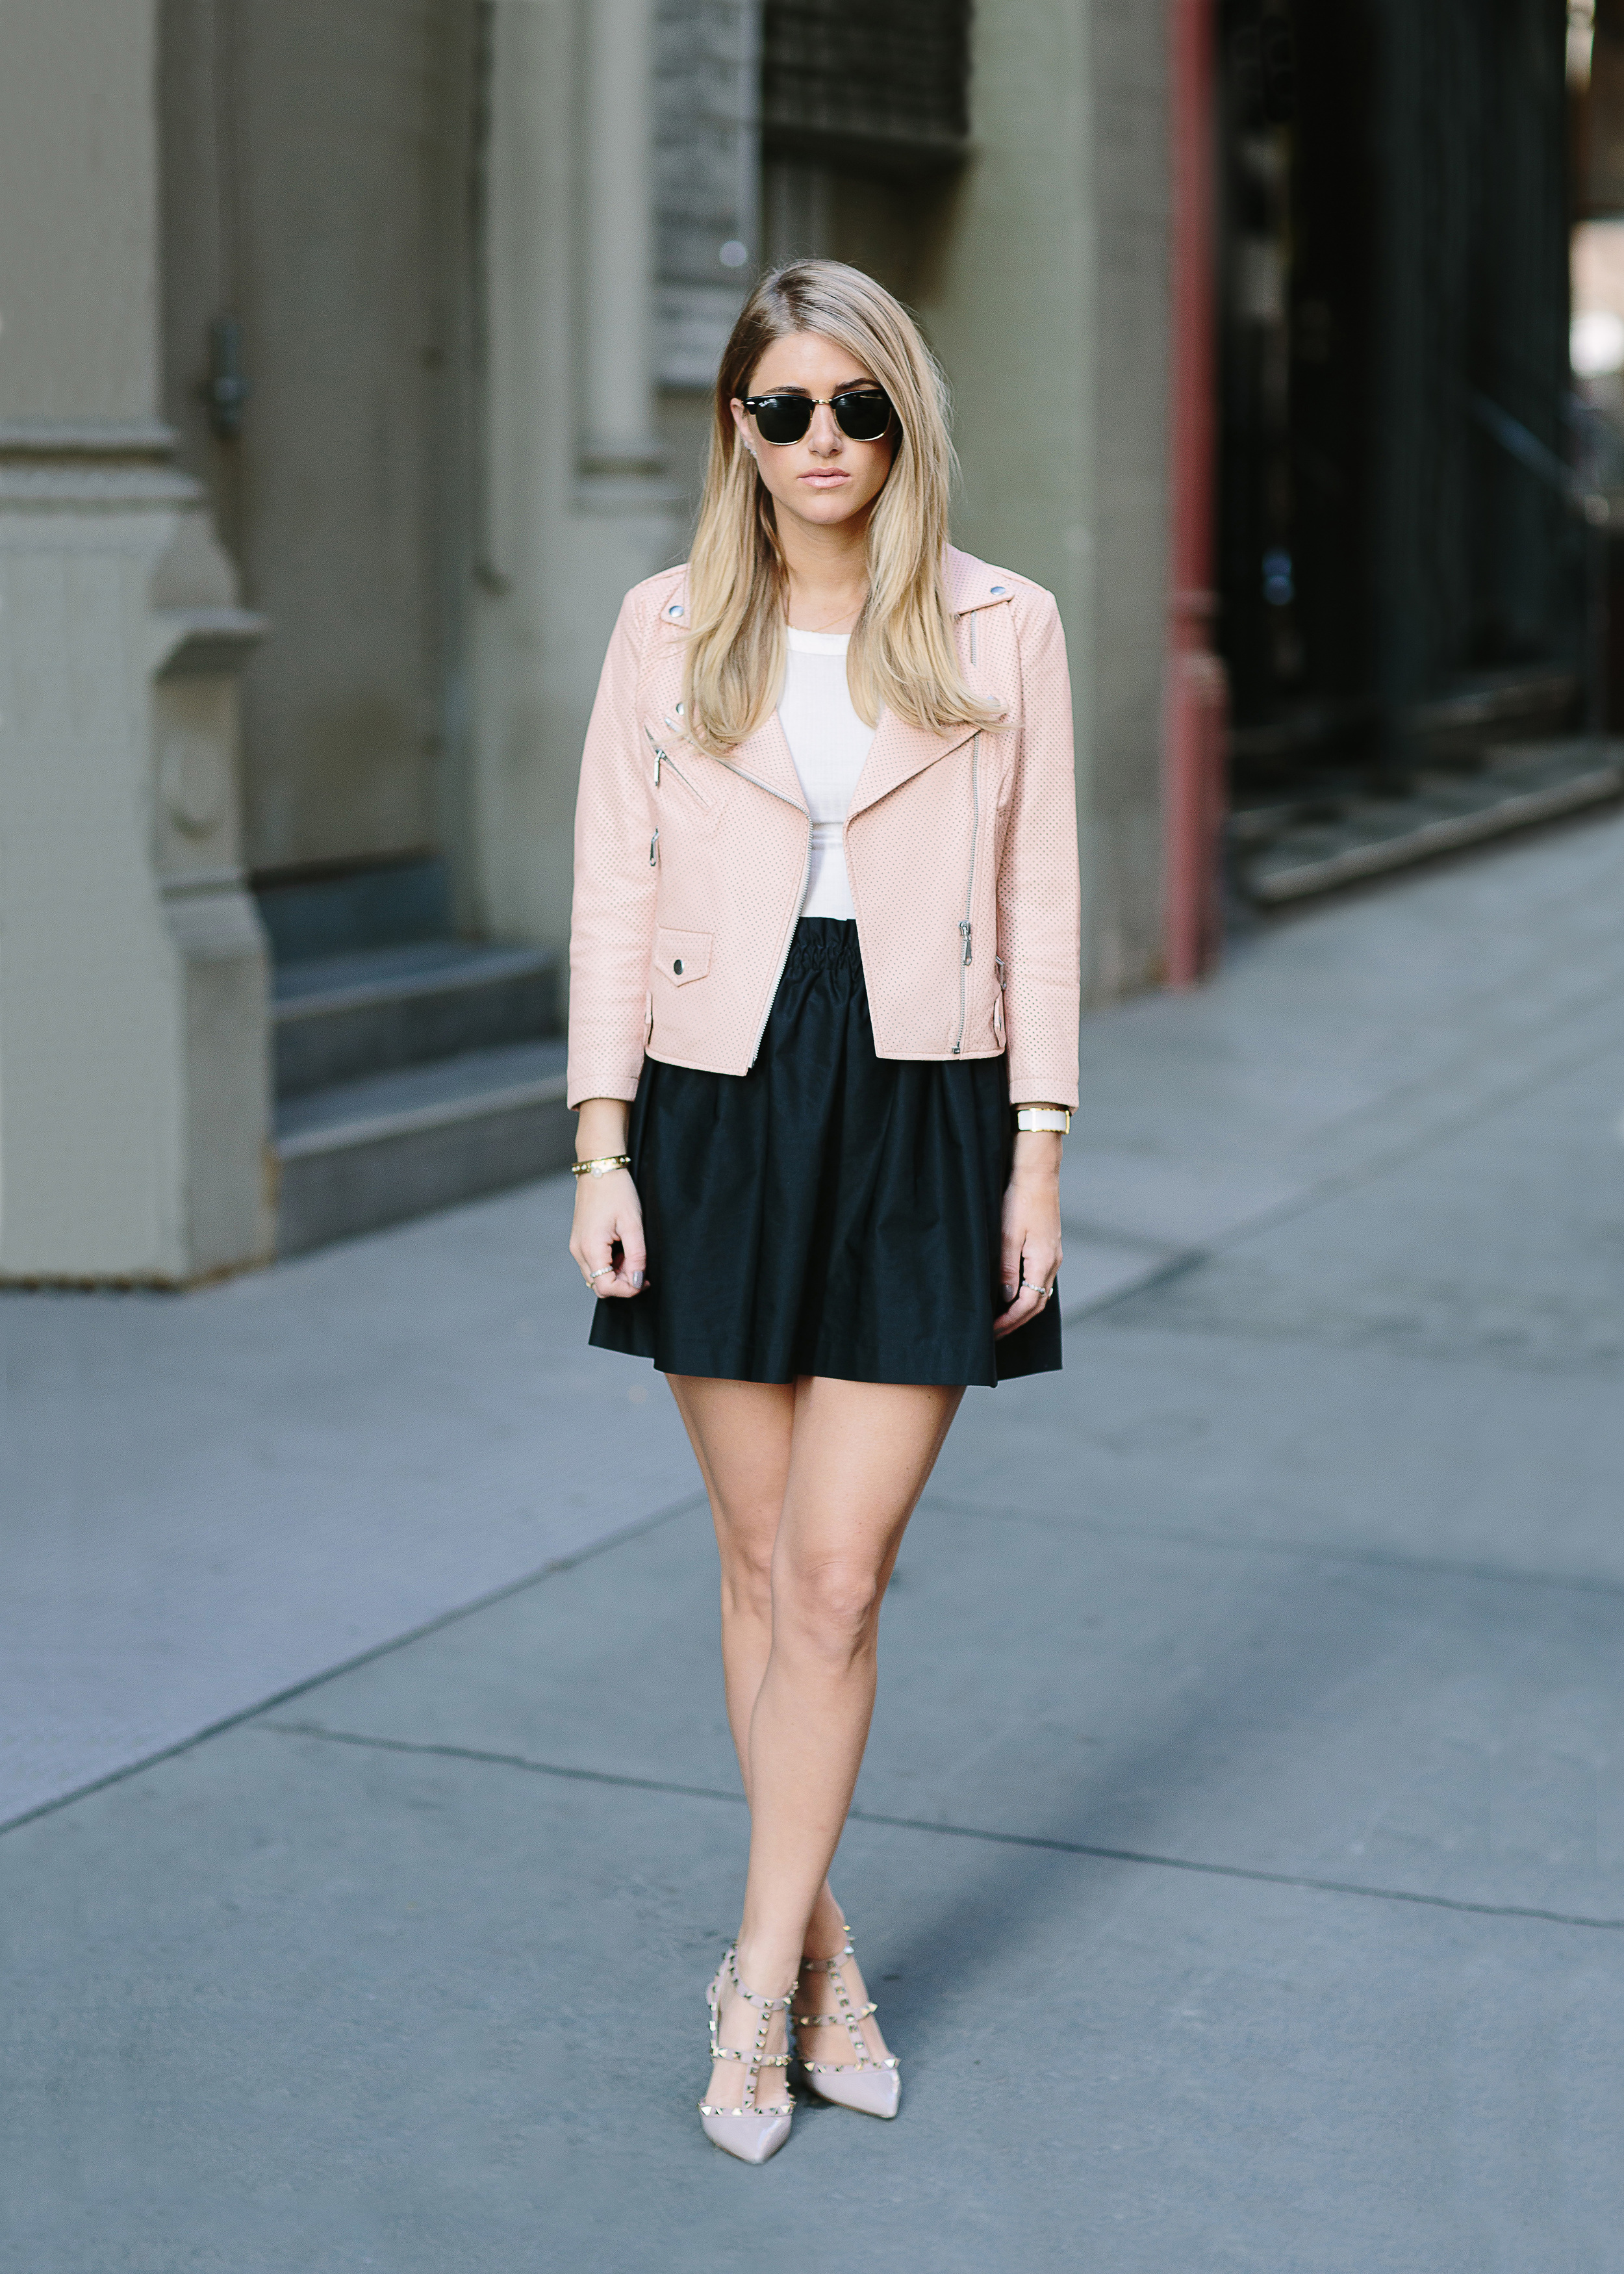 The perfect transitional office outfit.